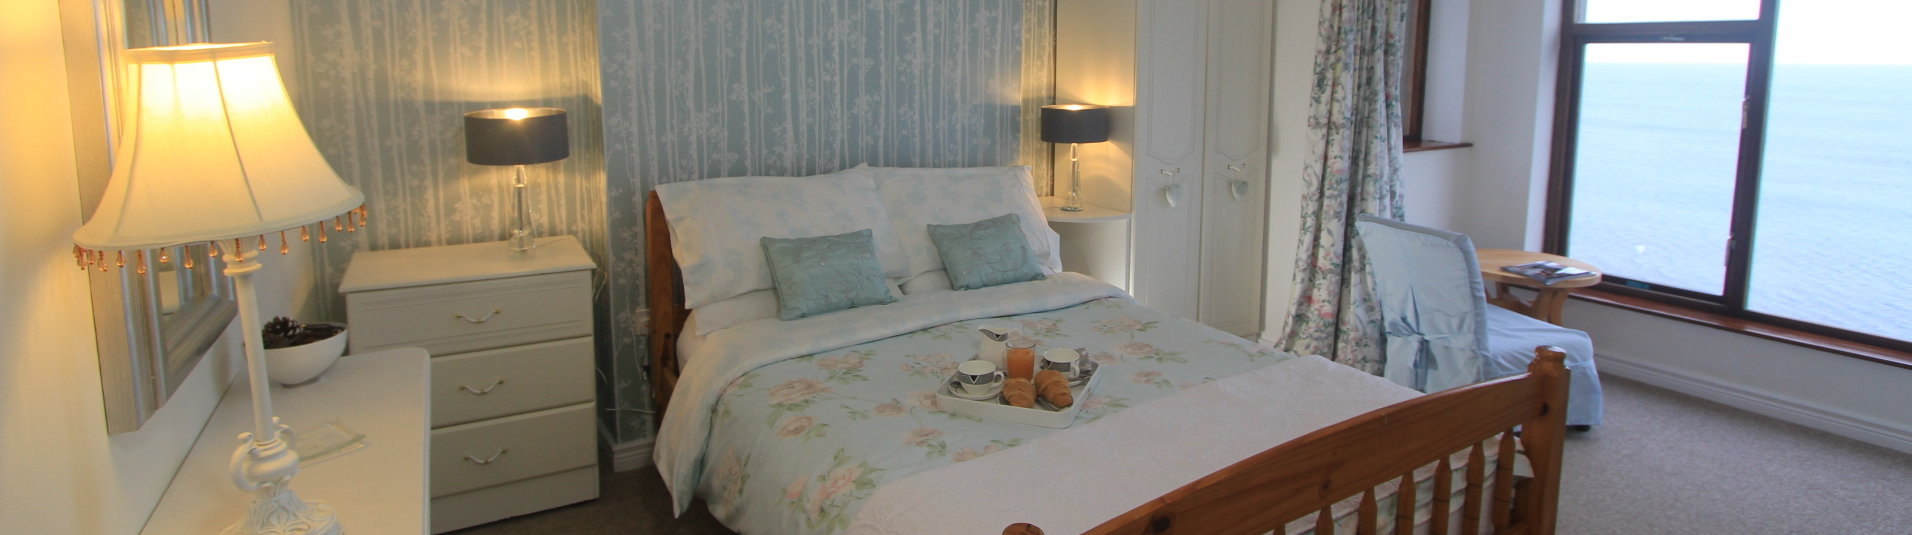 Ardclinis Double Bedroom